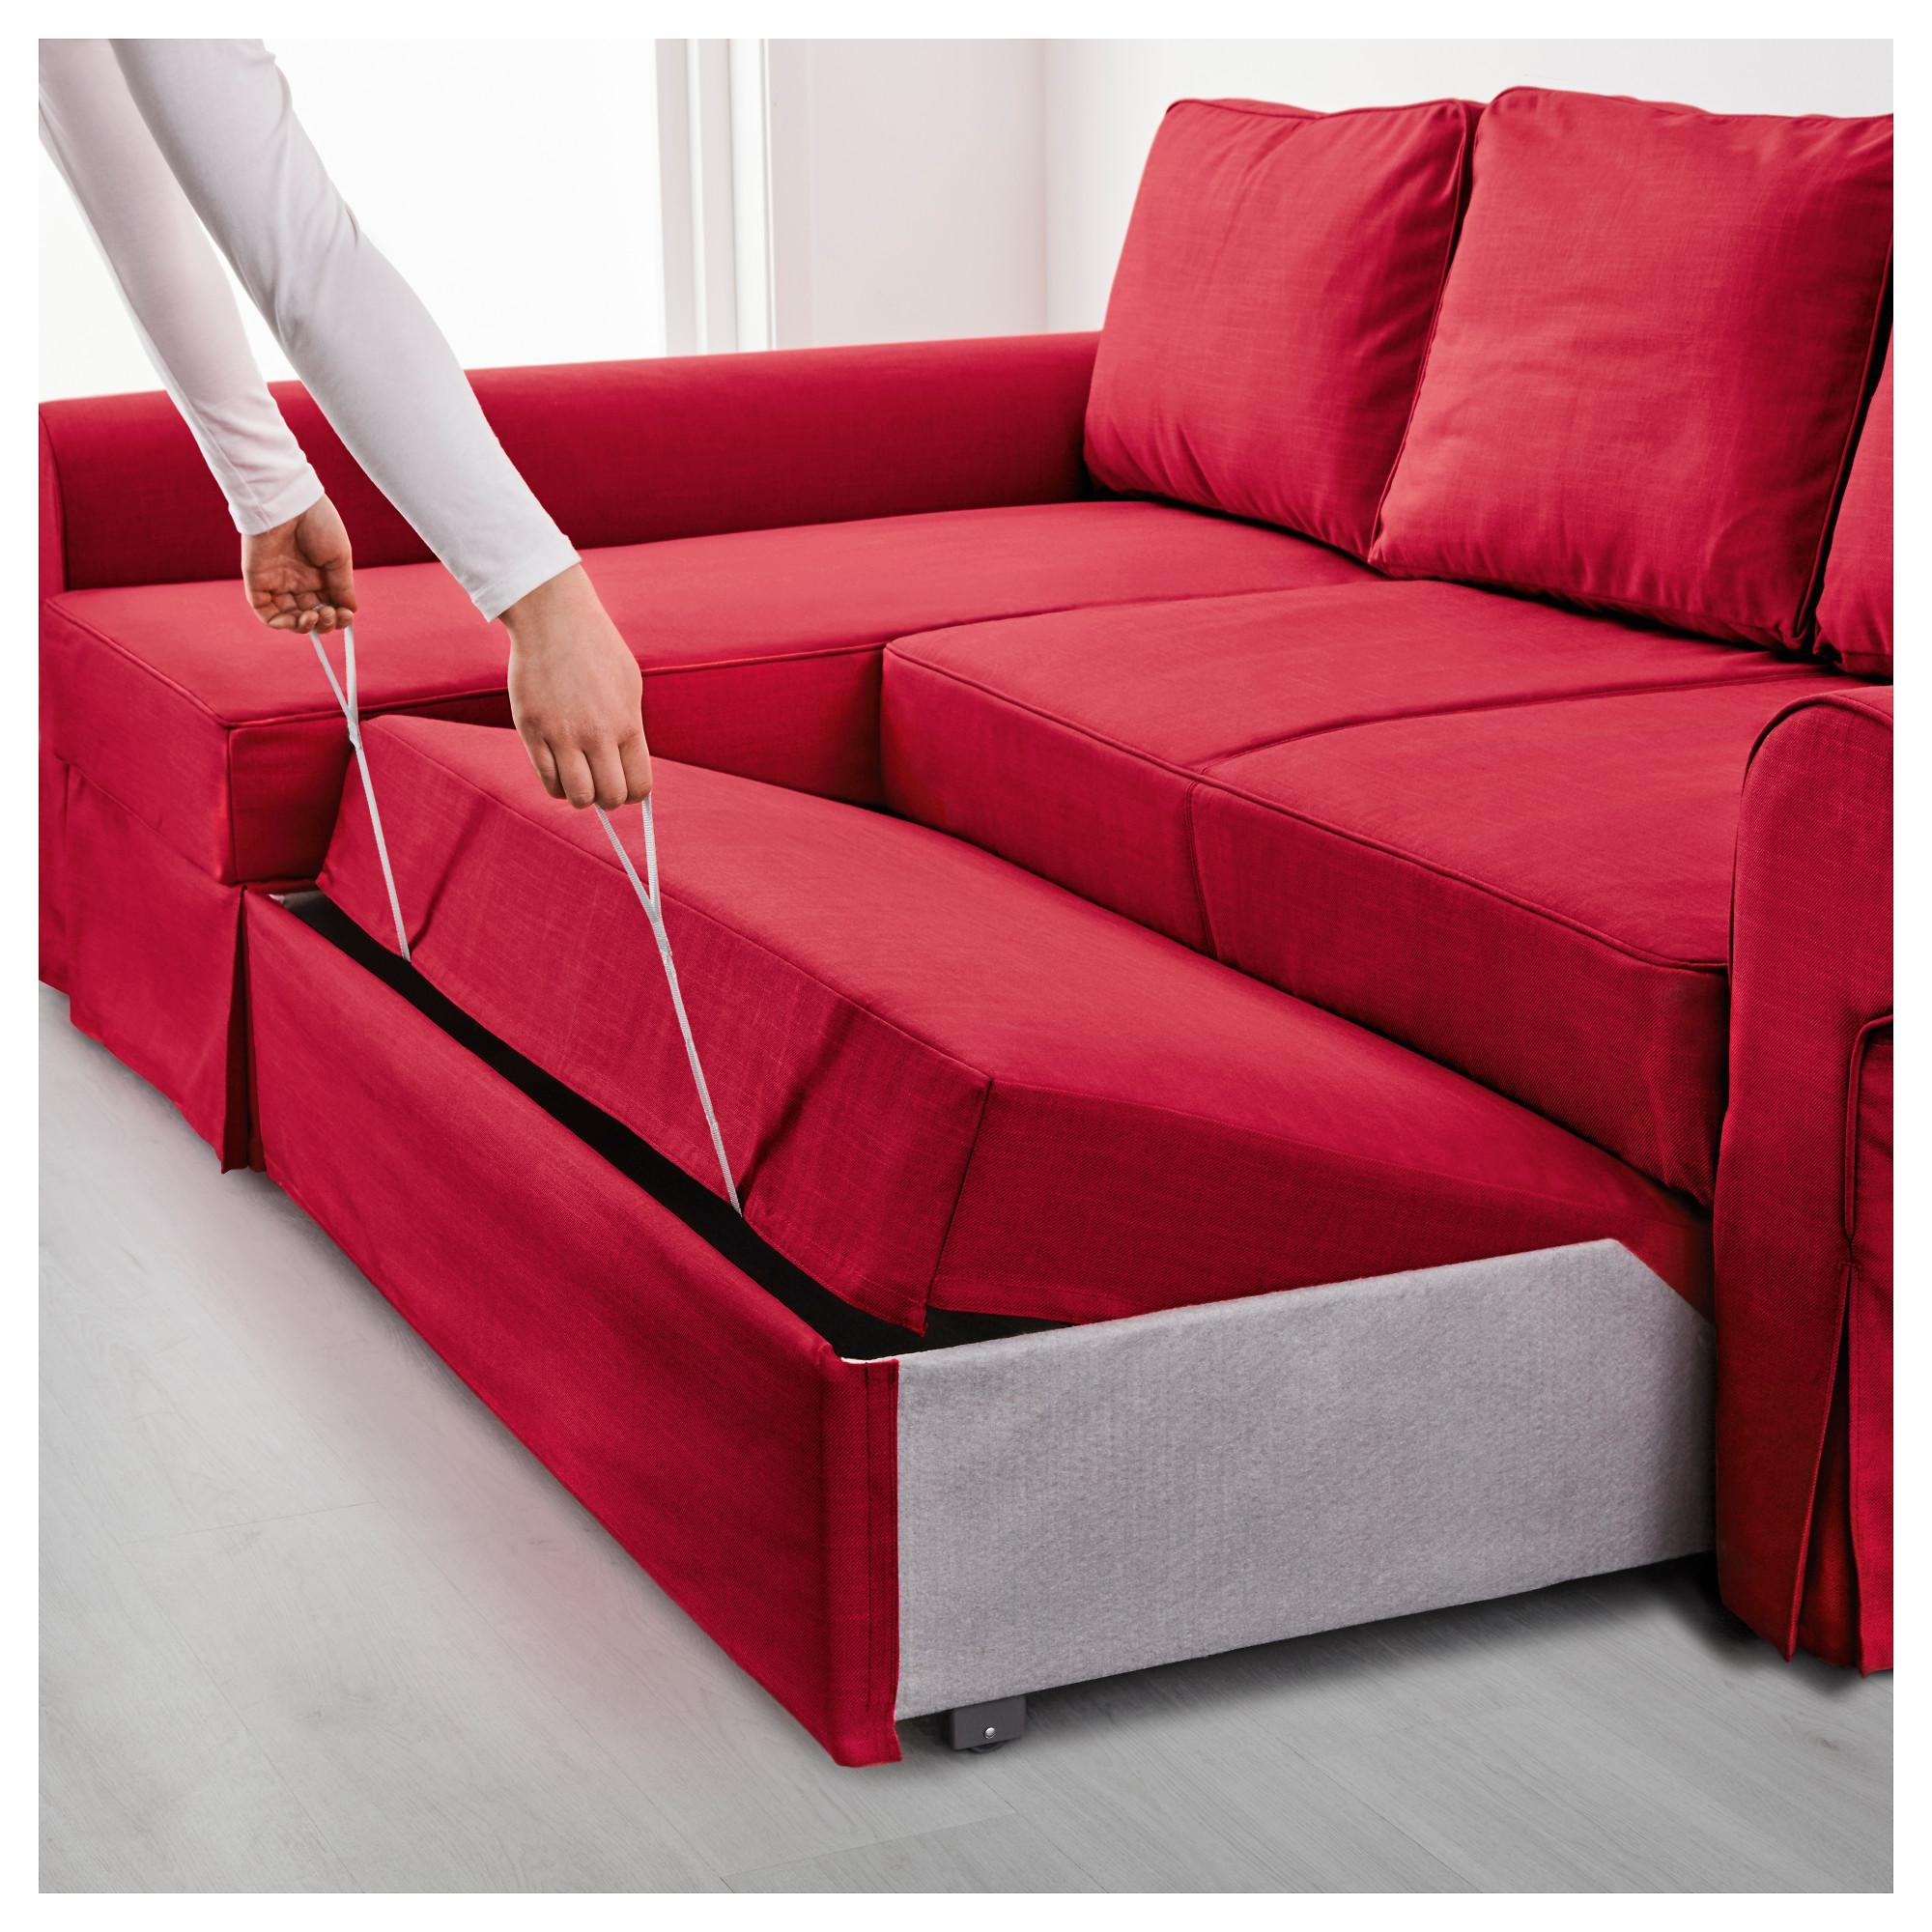 20 best ideas chaise longue sofa beds sofa ideas for Chaise bed sofa